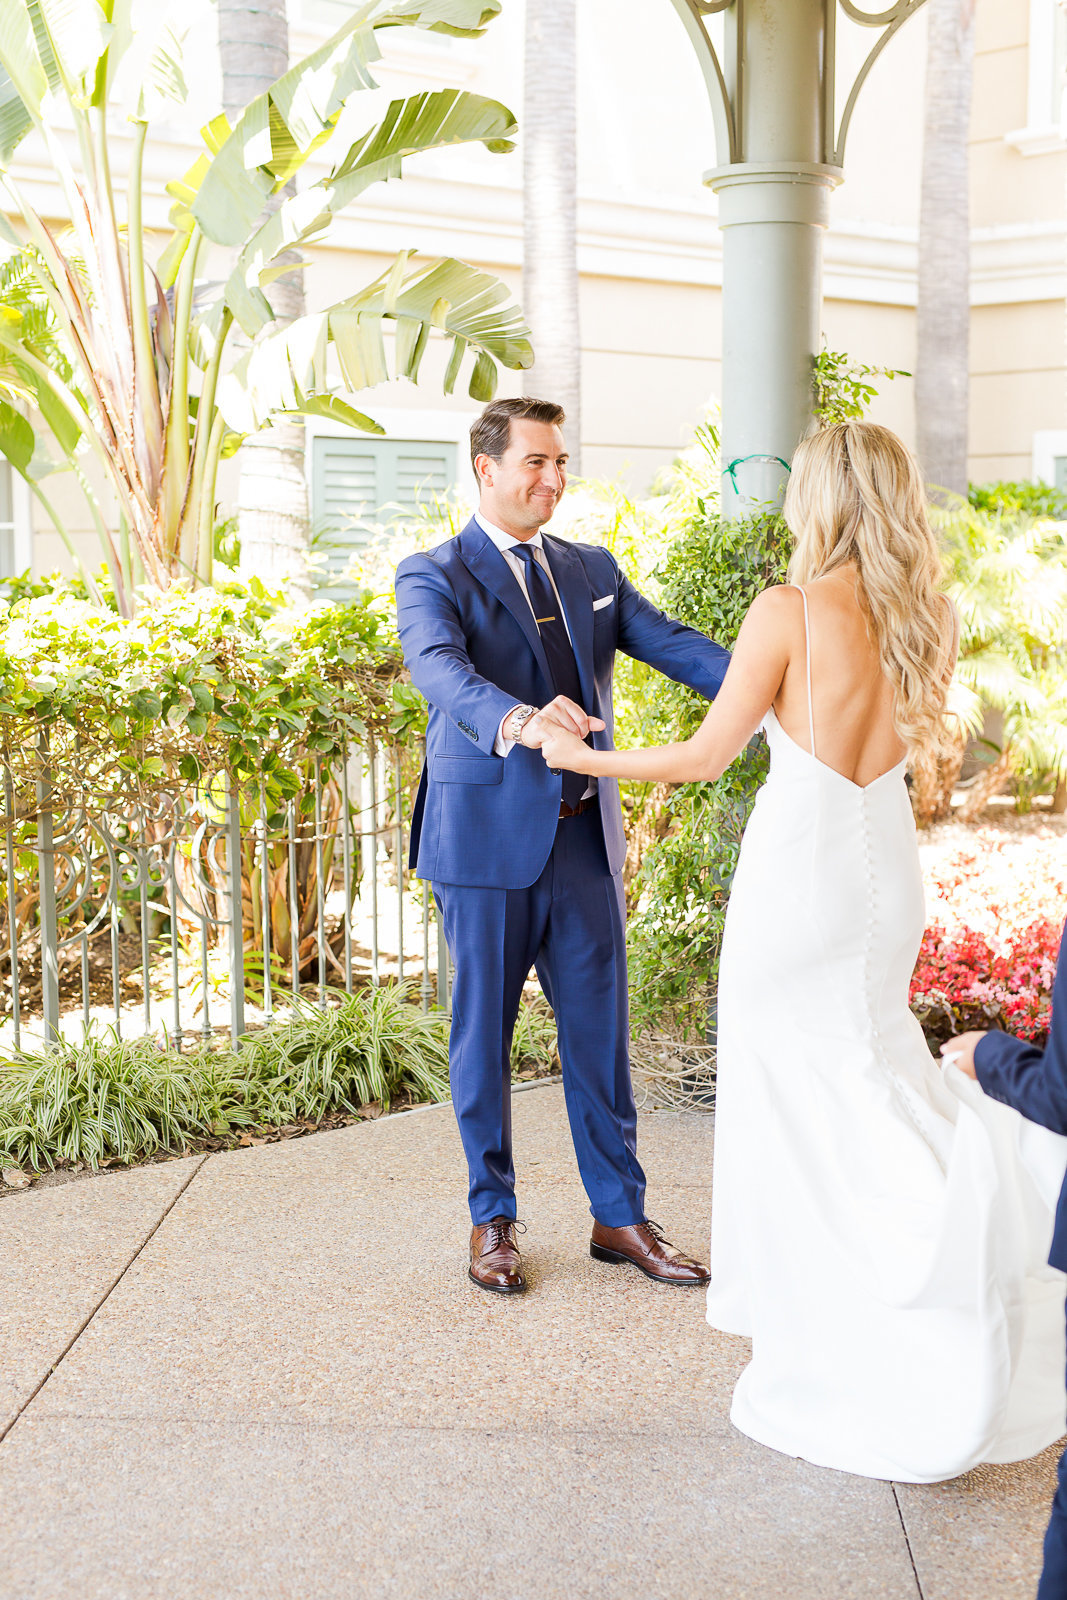 Newport Beach Caliornia Destination Wedding Theresa Bridget Photography-17